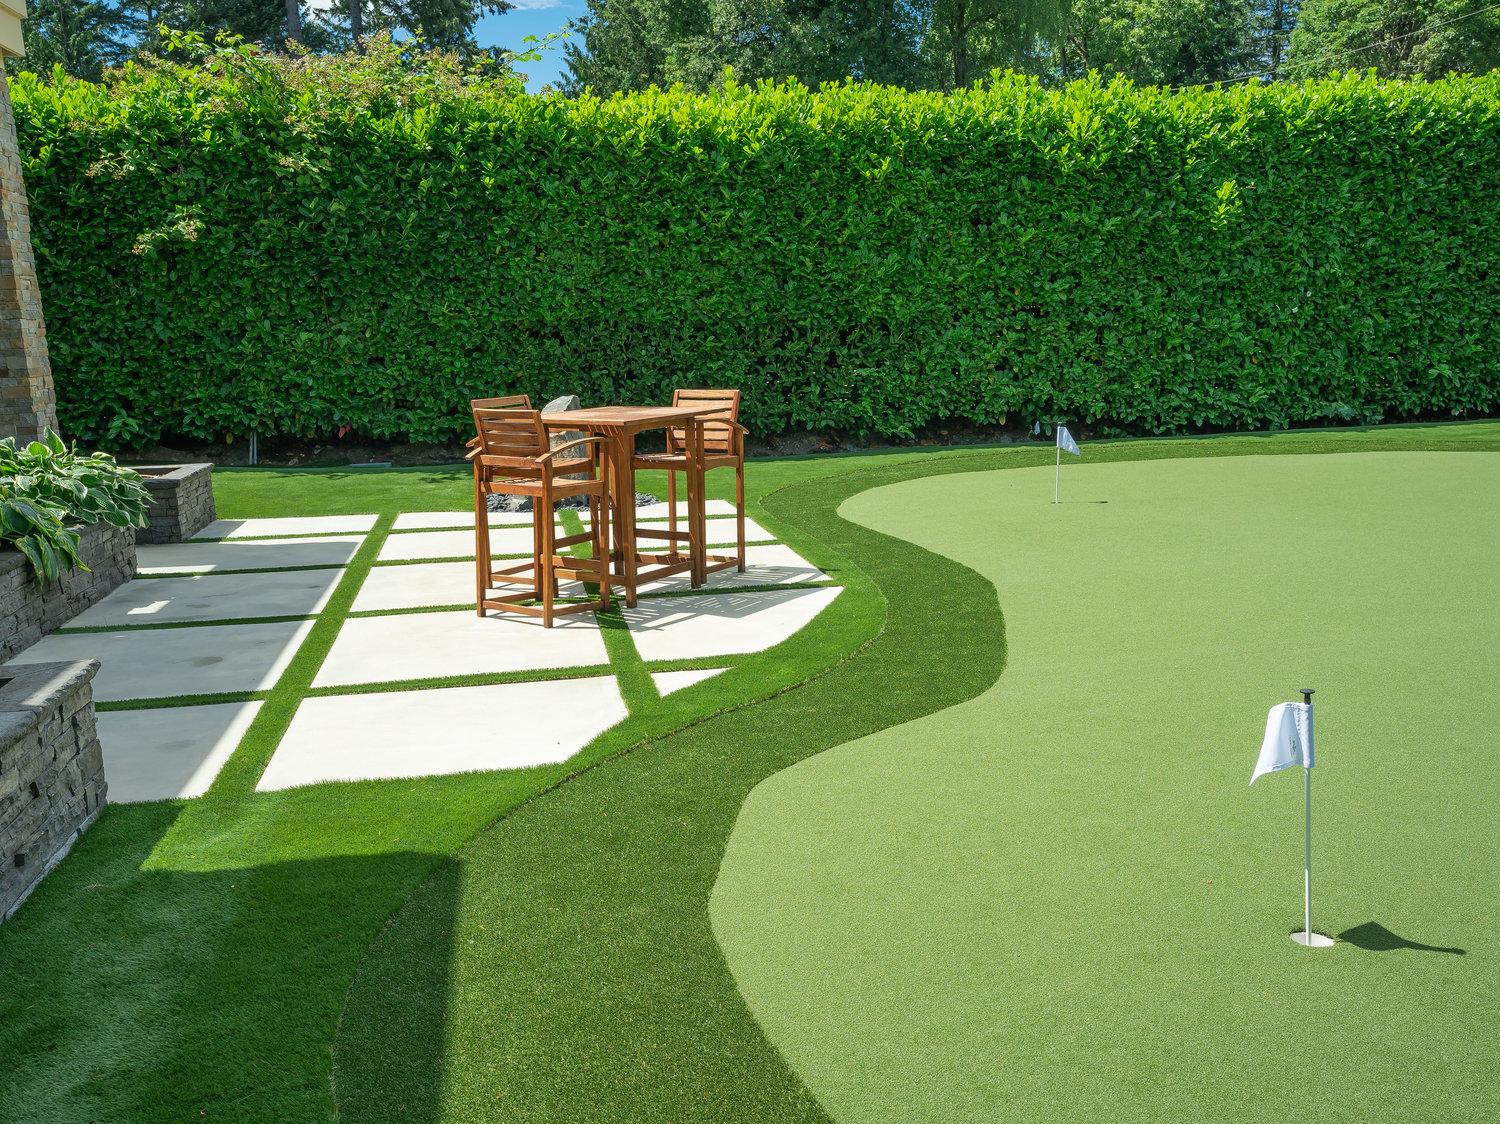 Buy Grass Wholesale - Premium Artificial Grass Installation | North Western Synthetic Grass